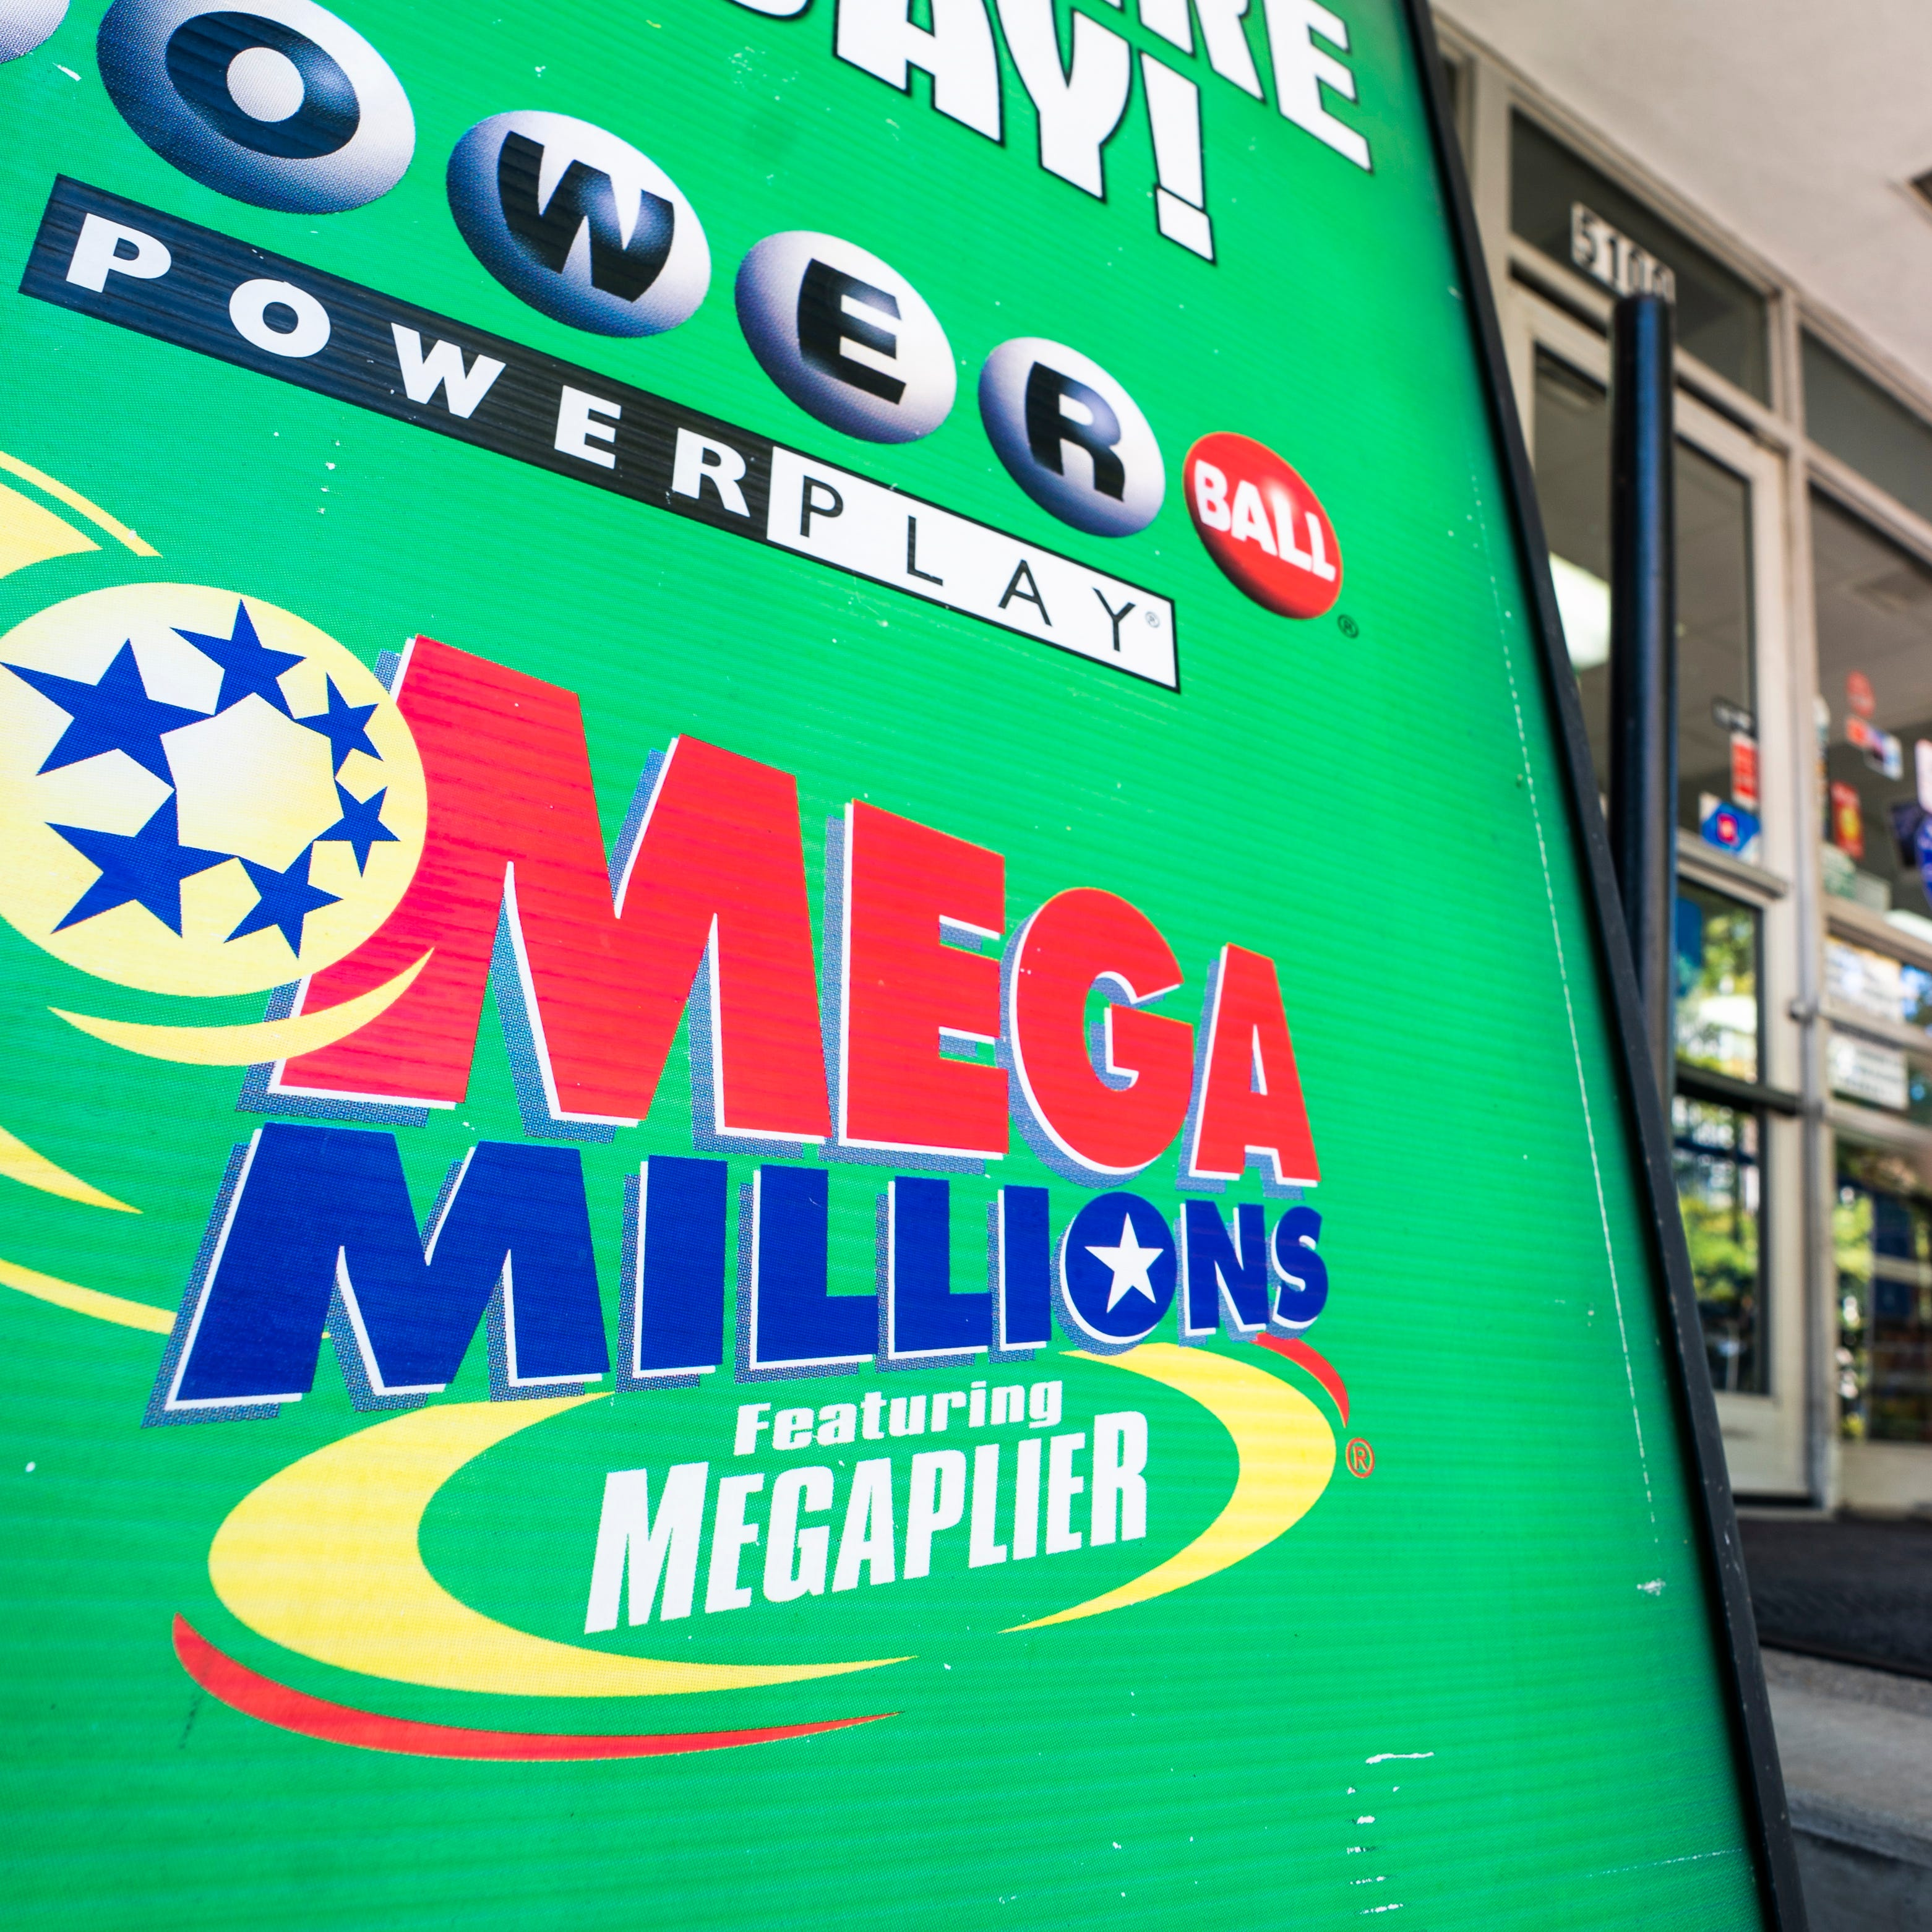 Say you win a billion dollars in the Mega Millions drawing. Then what?